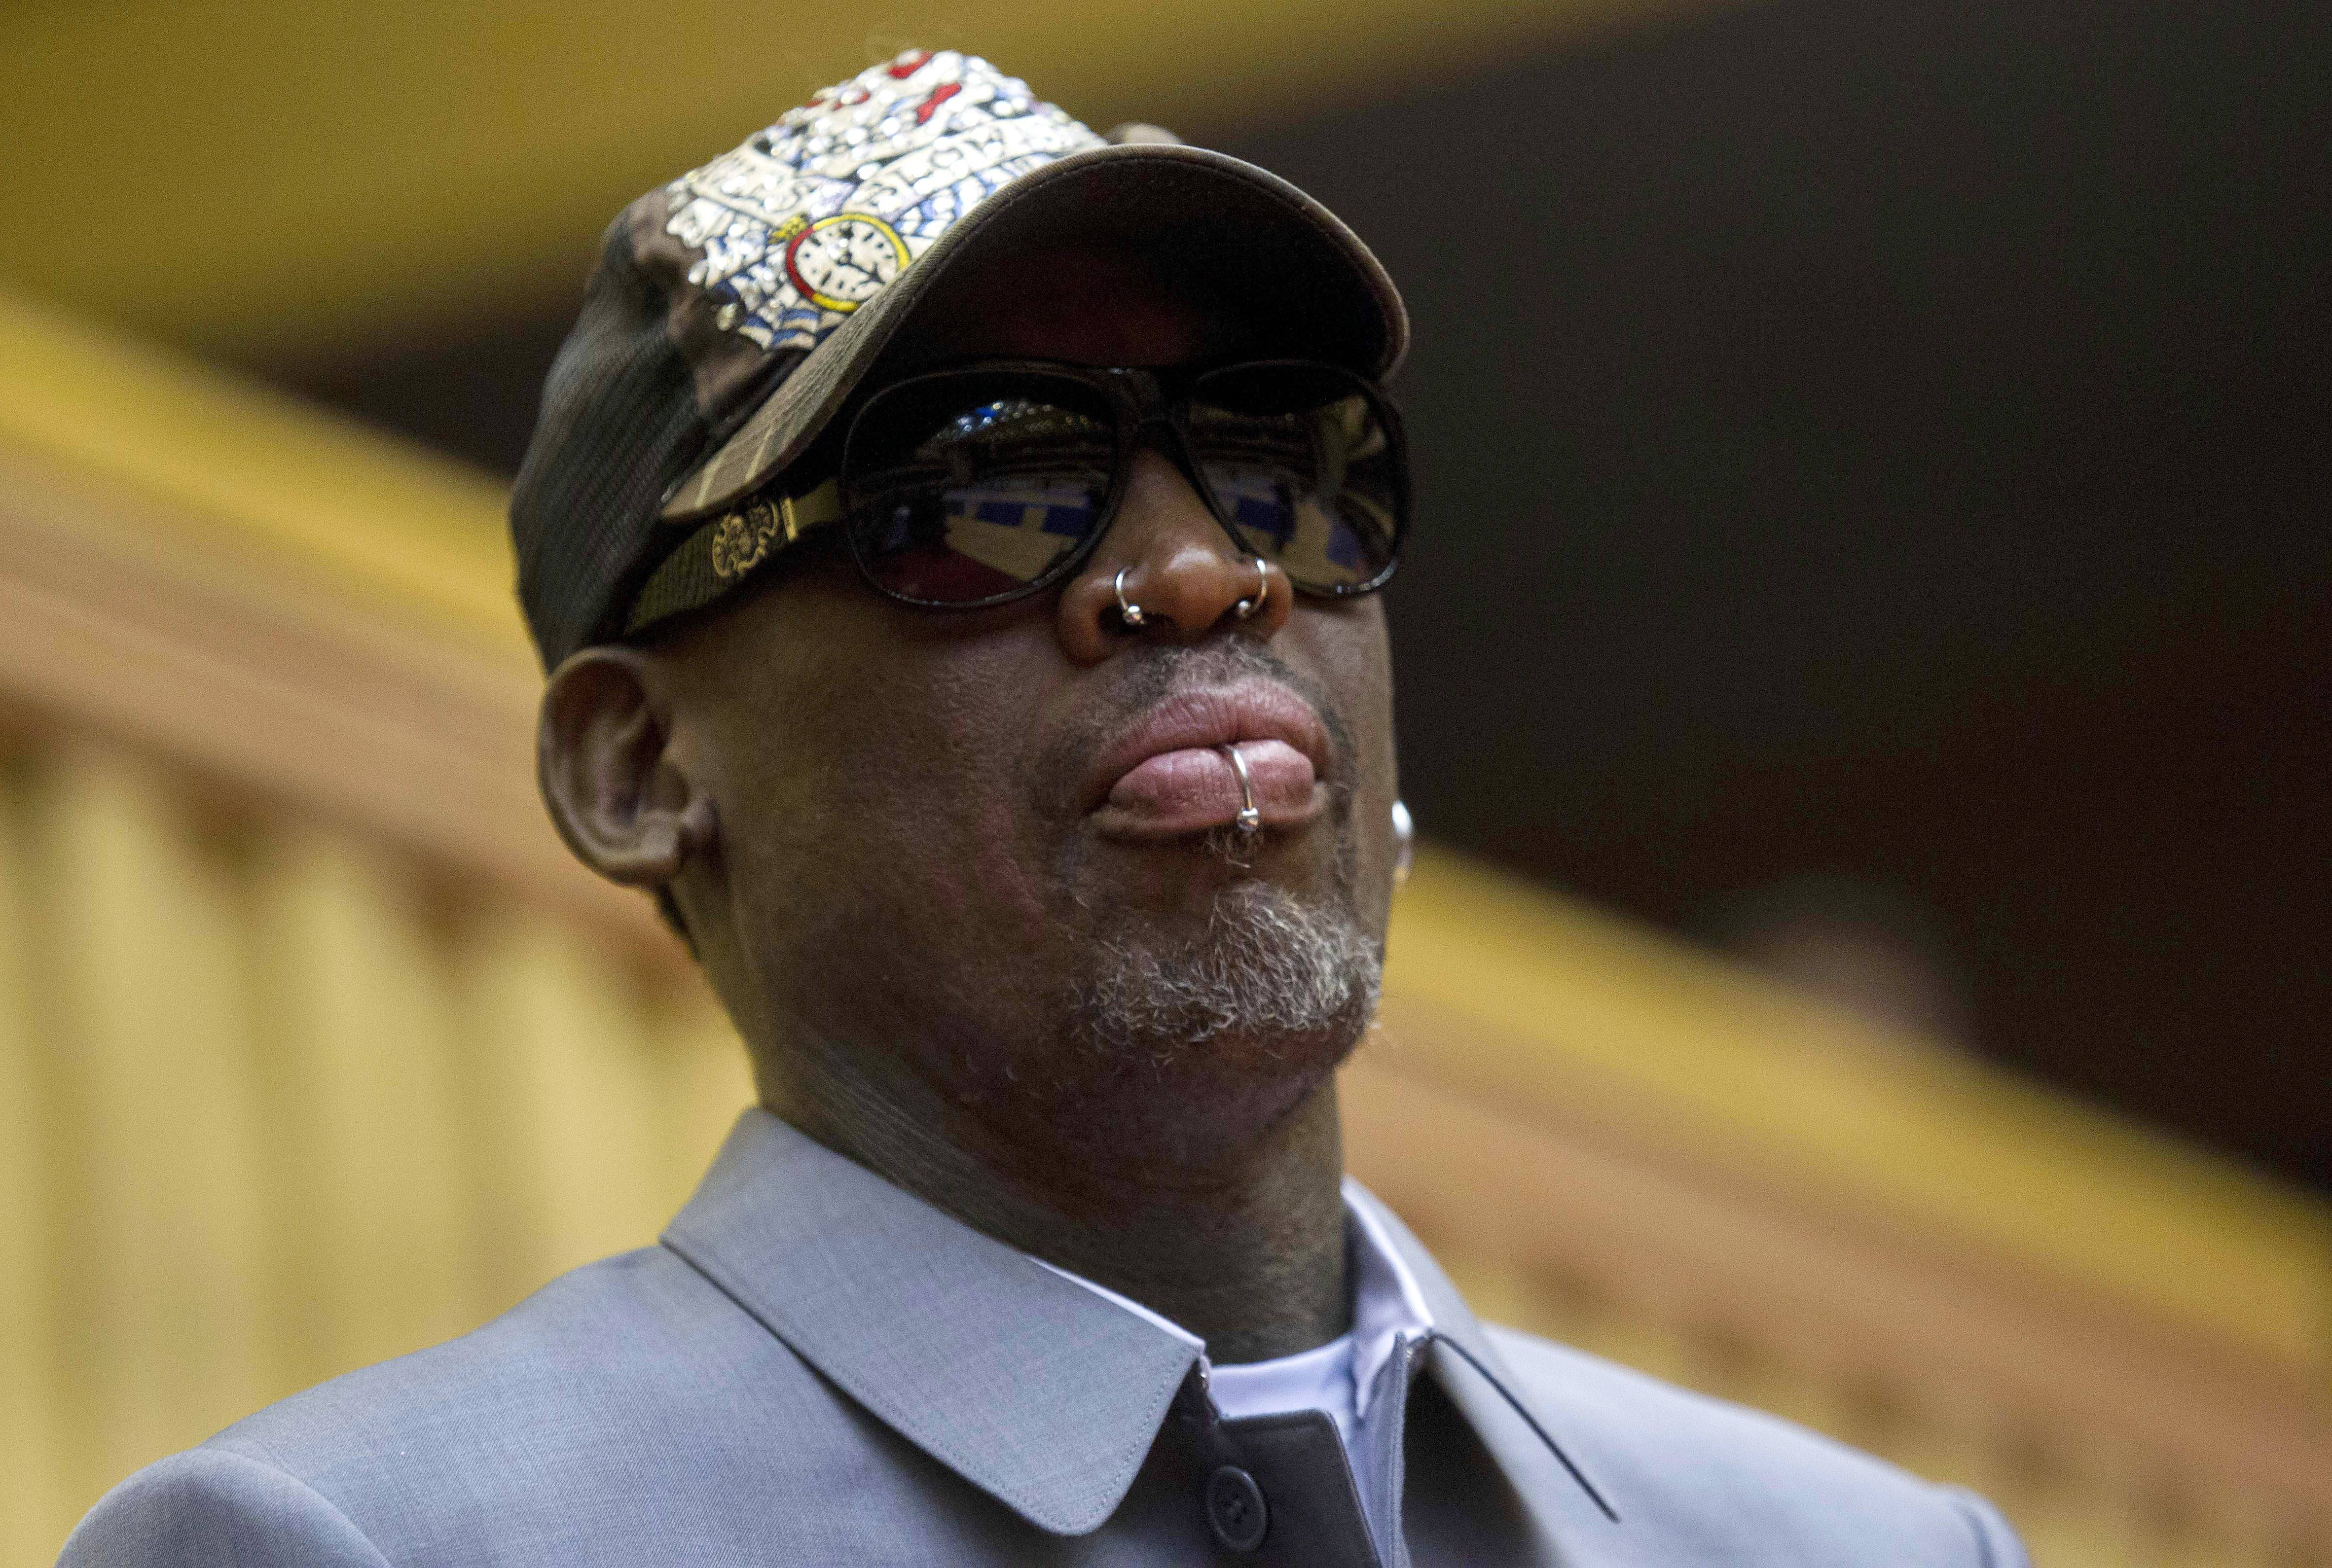 FILE - In this Jan. 8, 2014, file photo, former NBA basketball player Dennis Rodman looks out at the court at the end of an exhibition basketball game with U.S. and North Korean players at an indoor stadium in Pyongyang, North Korea. Rodman checked into an alcohol-rehabilitation center to reevaluate his life, not give up drinking. He spent three weeks in a New Jersey-based facility when he returned from his latest trip to North Korea.(AP Photo/Kim Kwang Hyon, File)